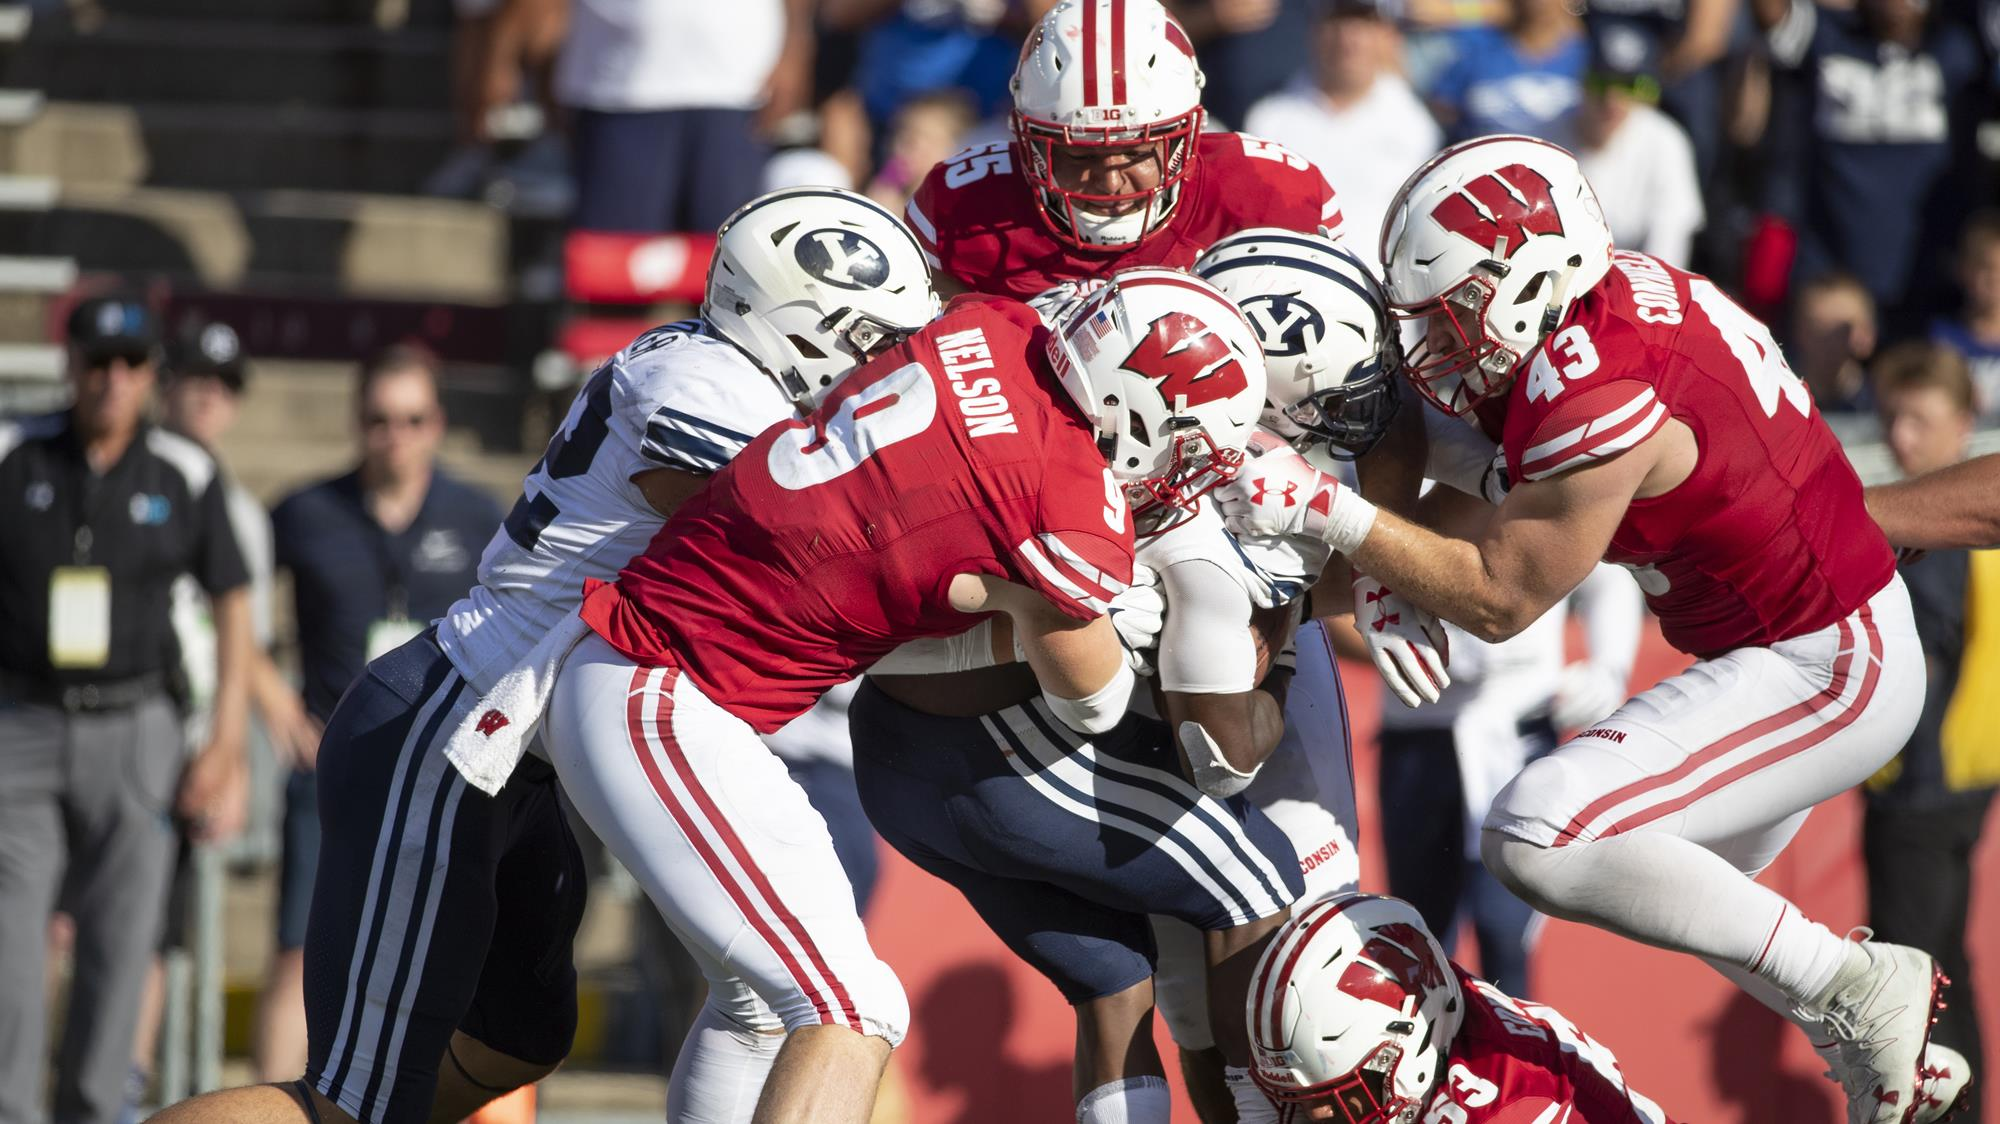 First Nonconference Home Loss For Badgers Since 2003